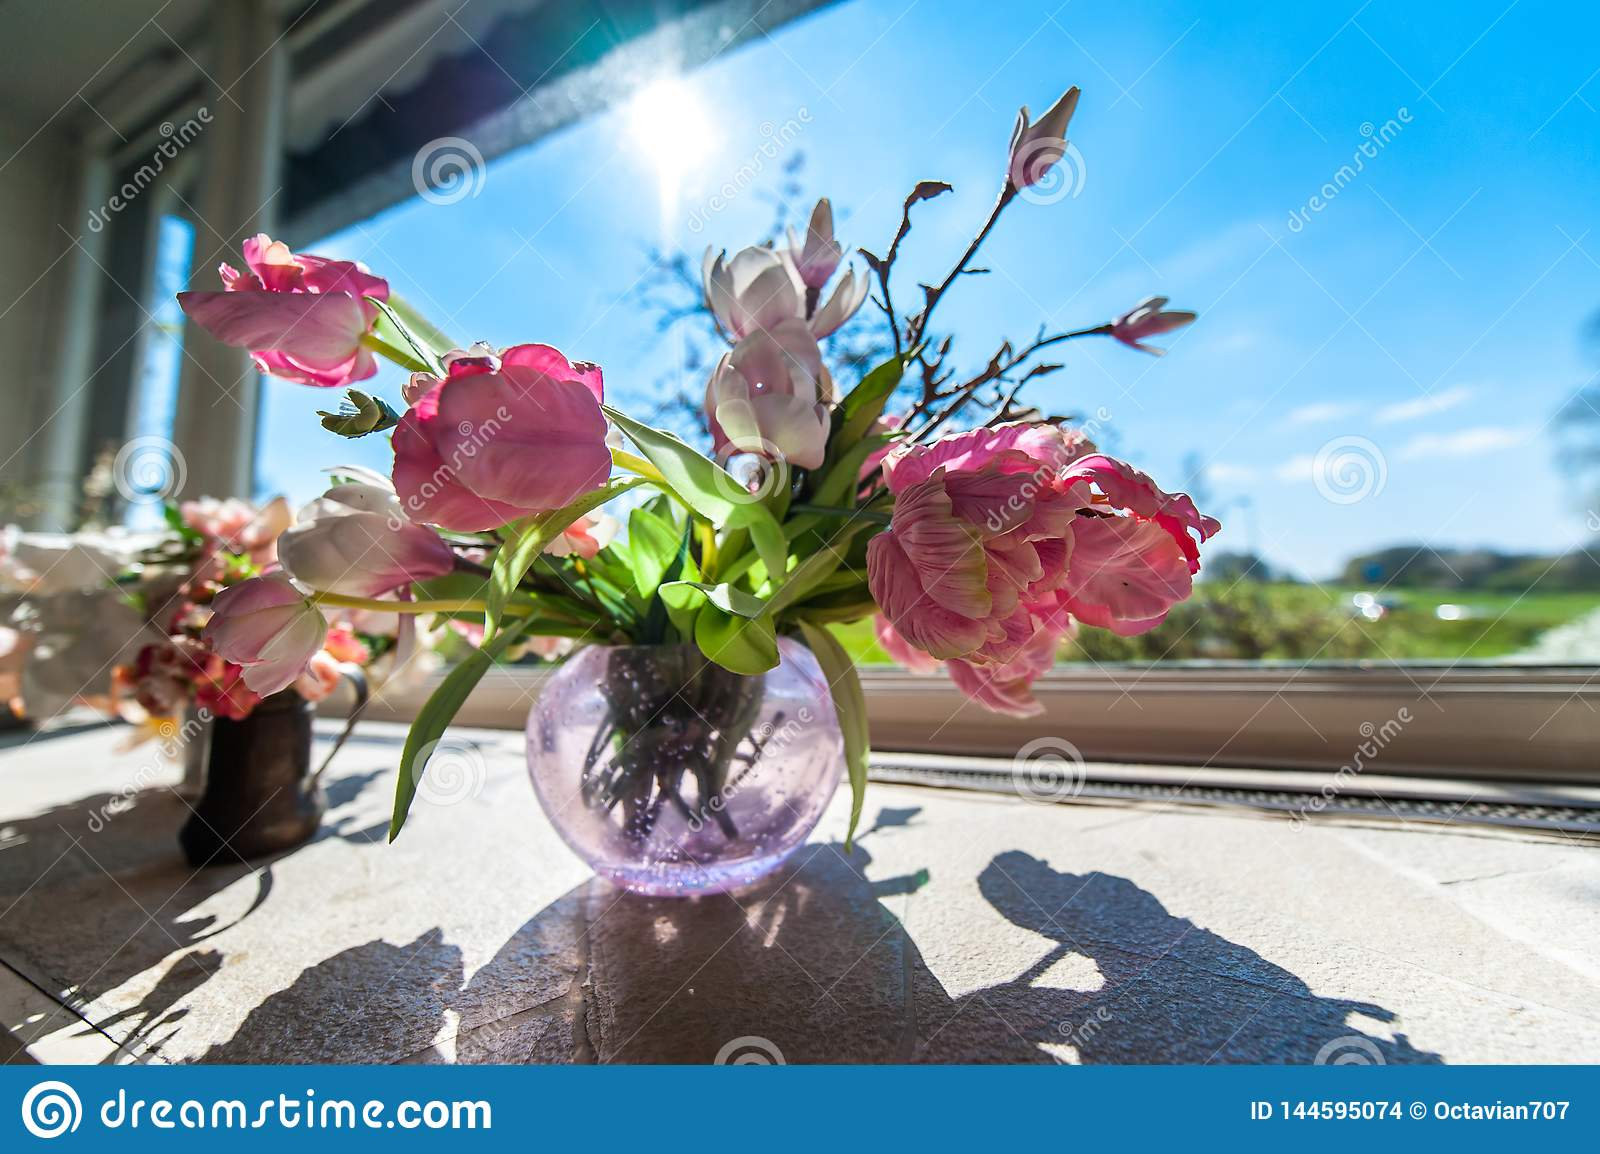 Flowers in a vase in front of window with blue sky